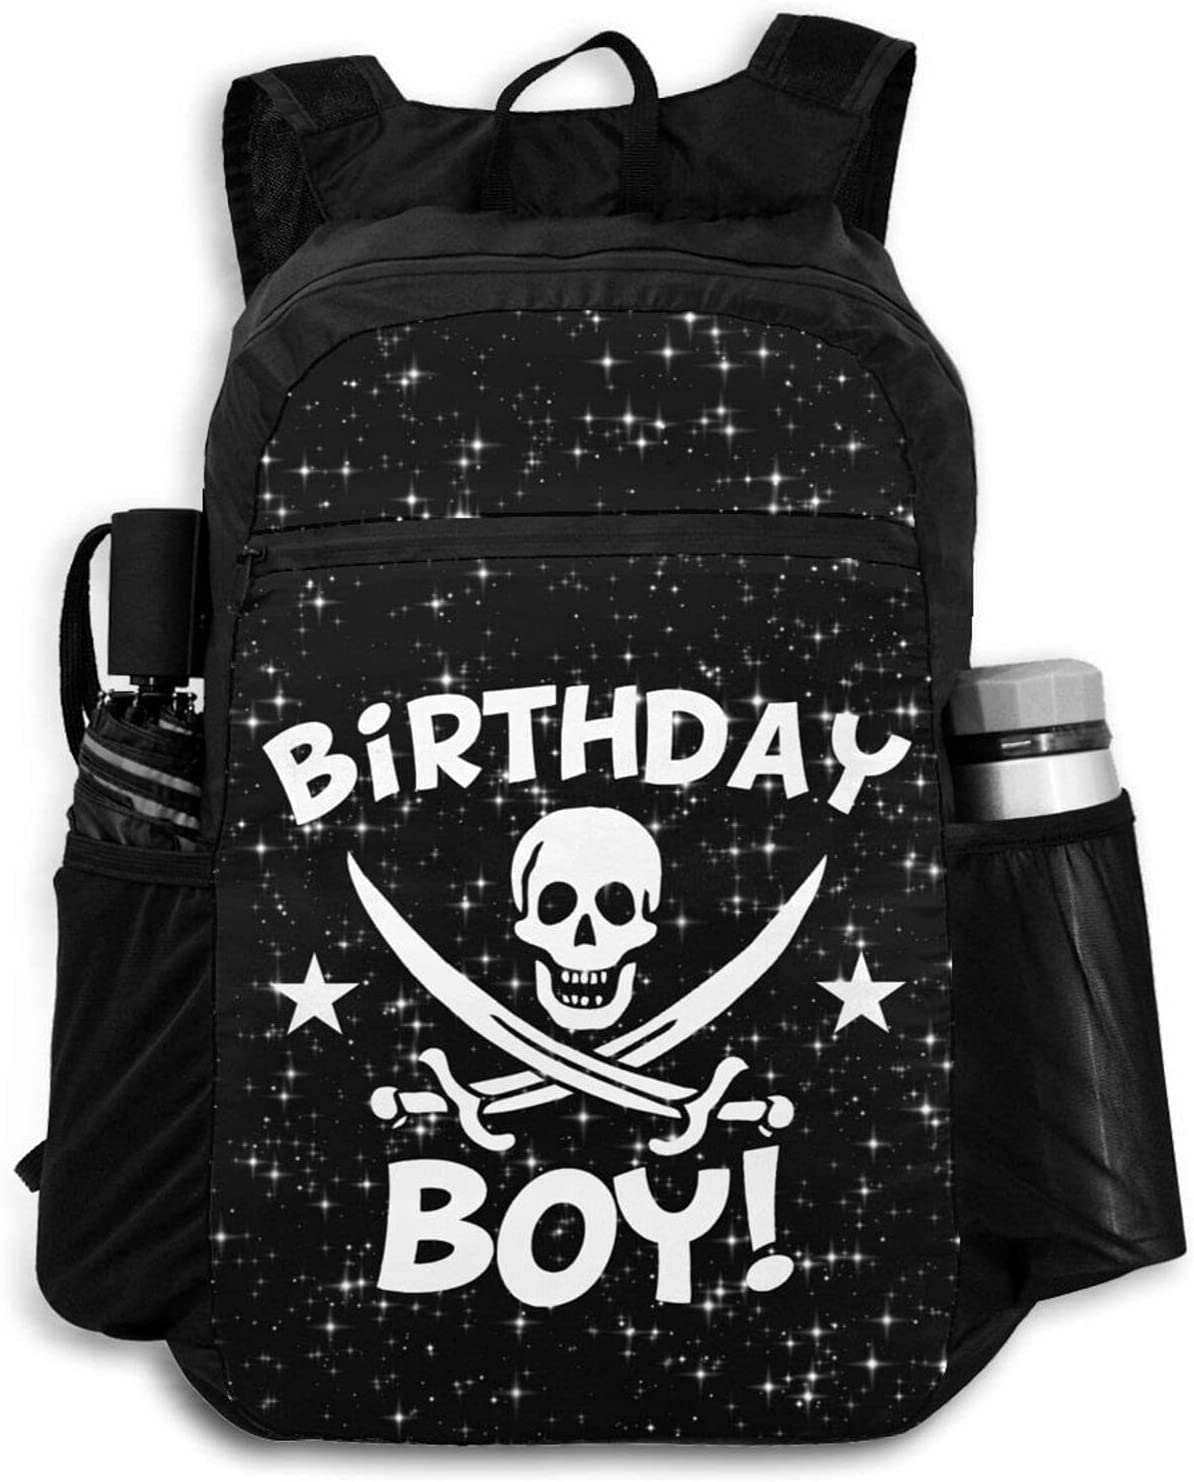 Zolama Birthday Boy Pirate Skull Backpacks for Challenge the lowest price of Japan ☆ Men Cute Pa 2021new shipping free Women